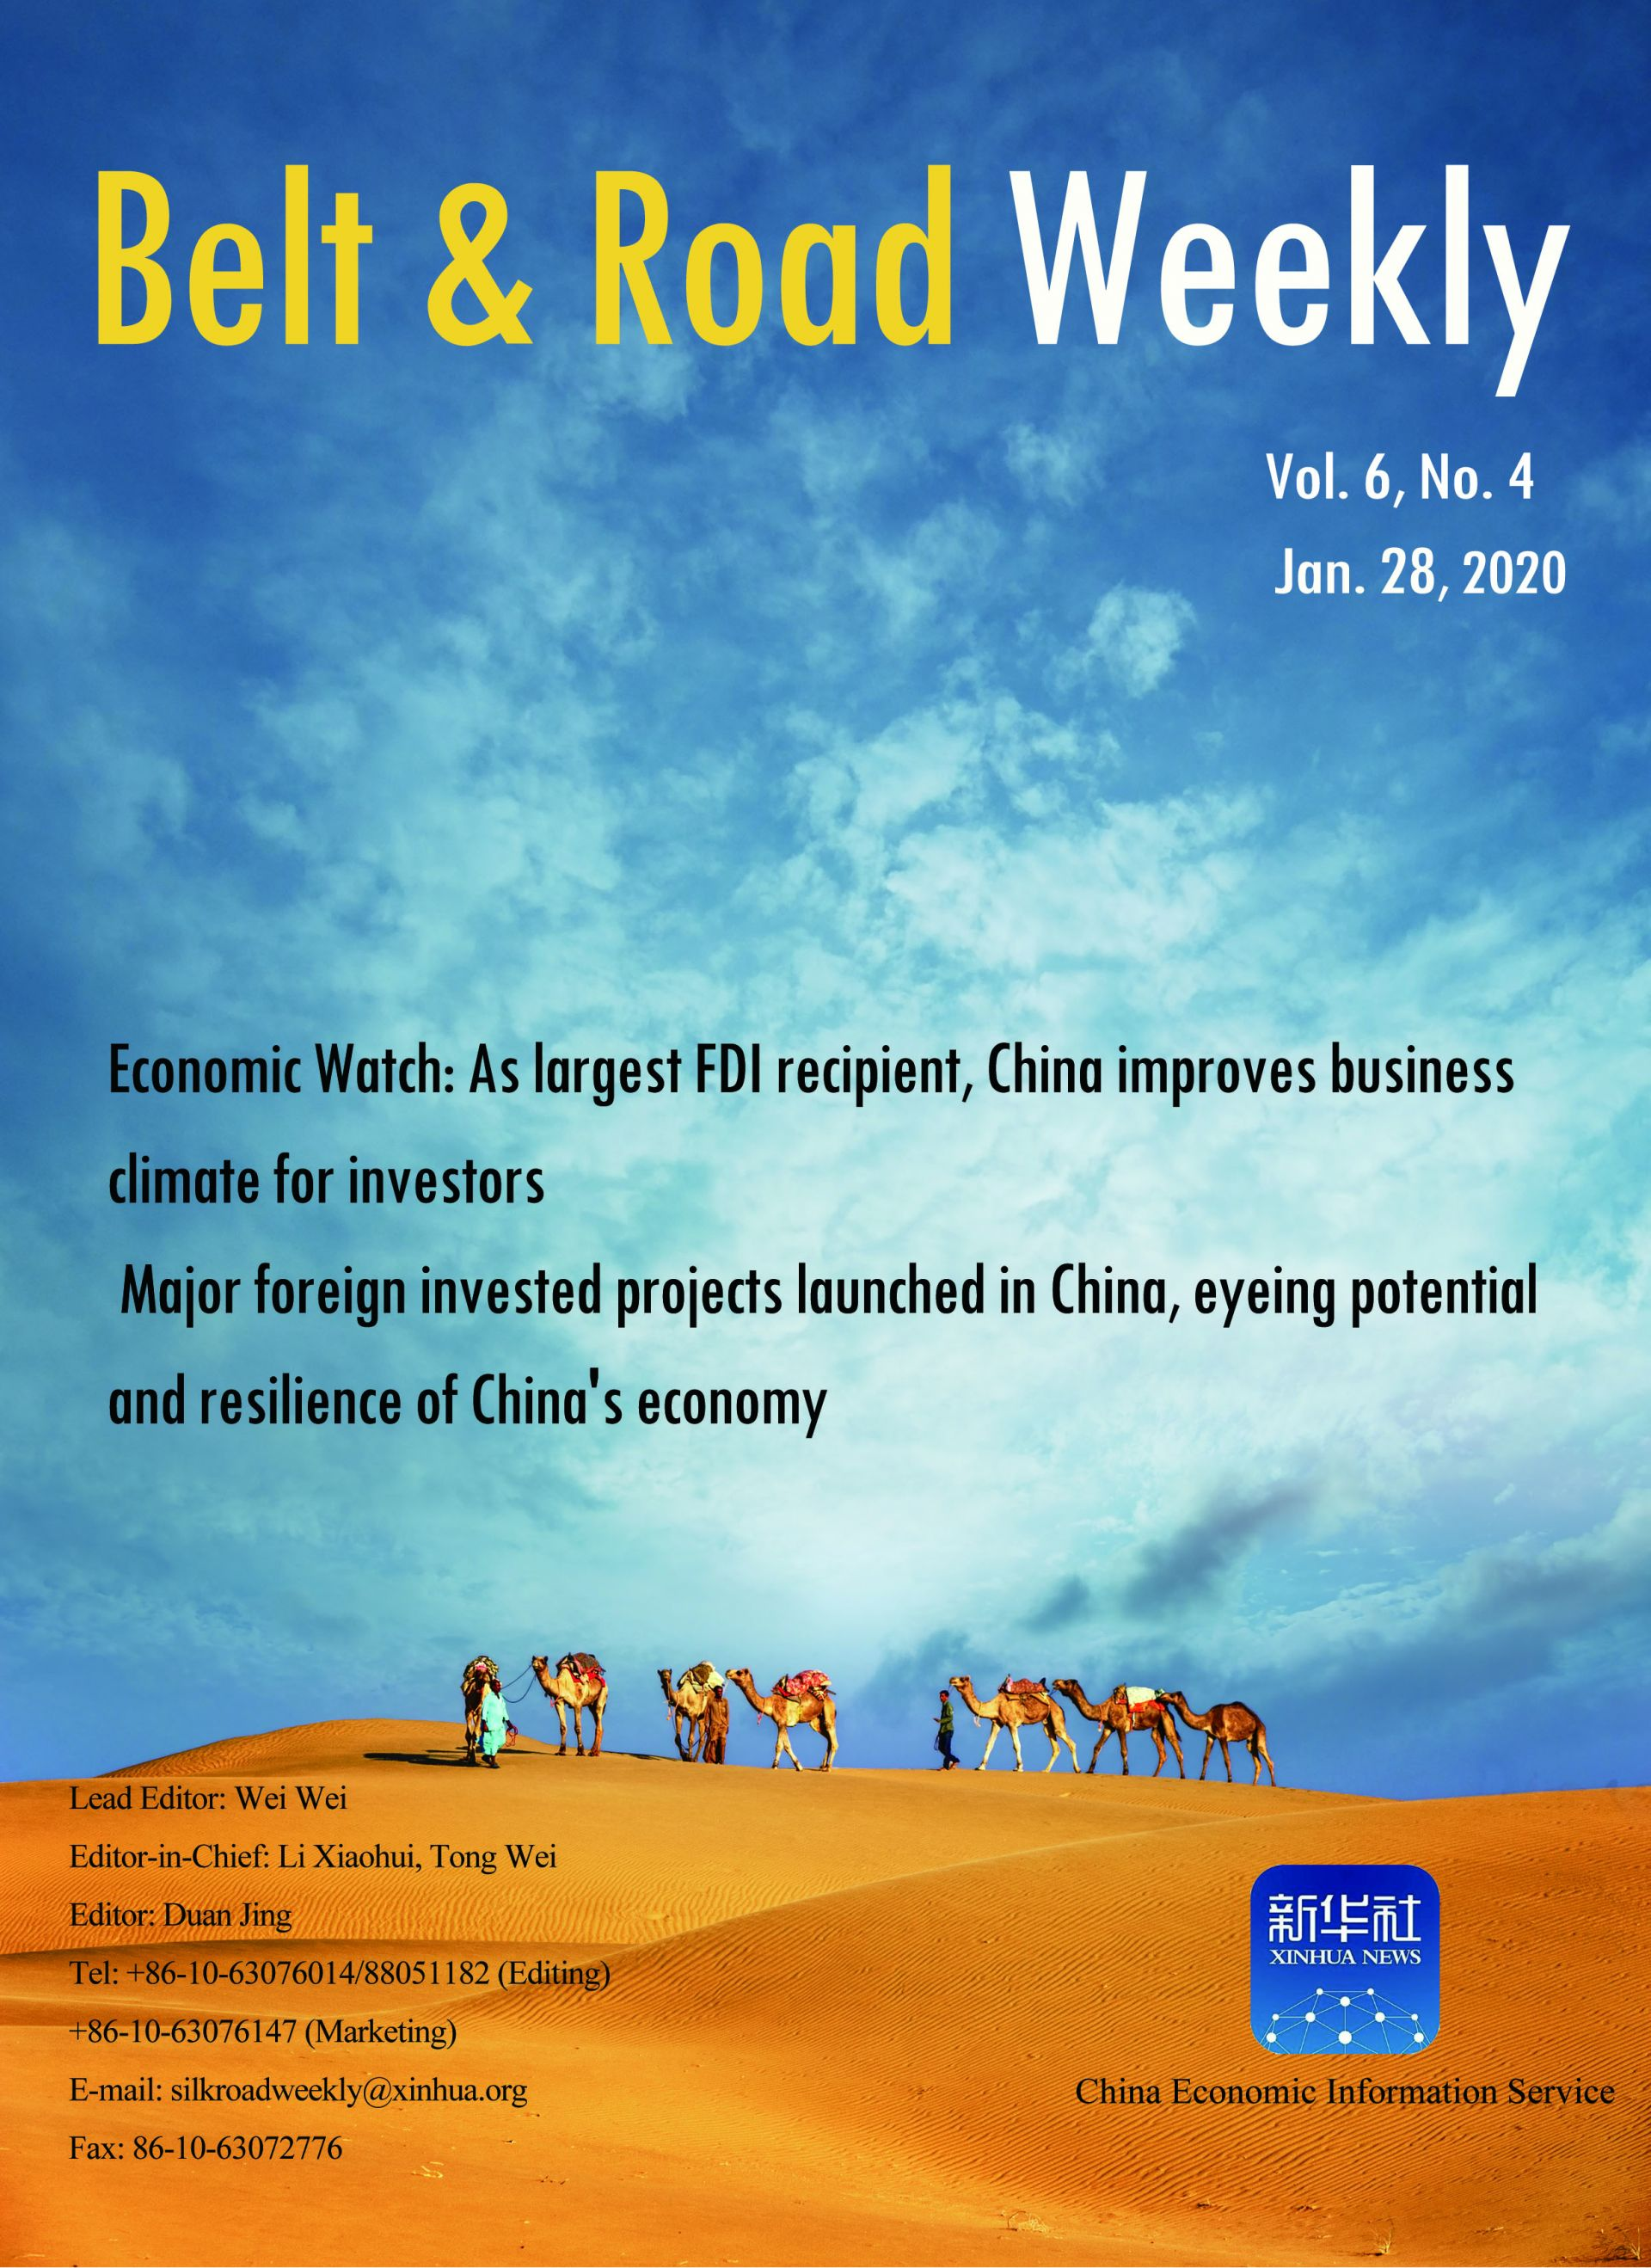 Belt & Road Weekly Vol. 6 No. 4